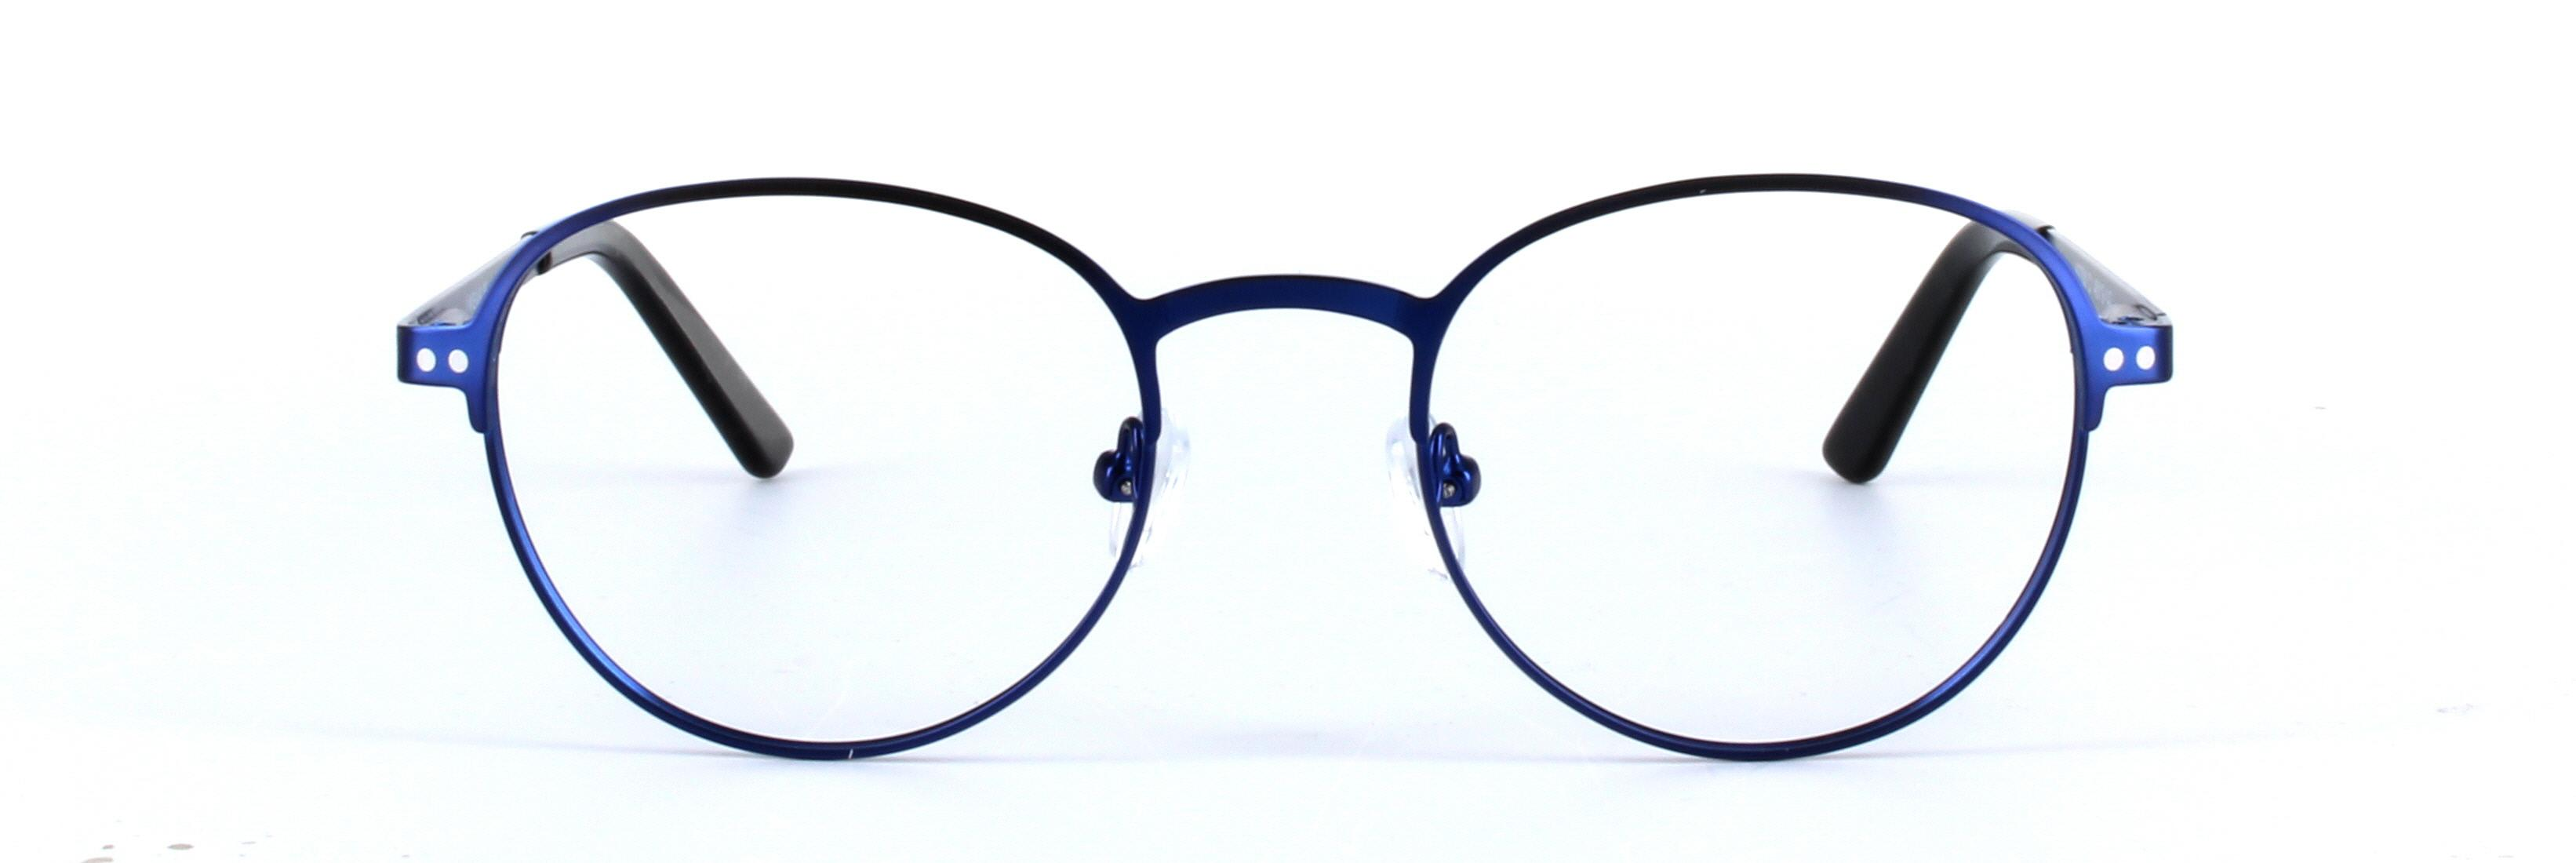 Round shaped glasses frame  - Landen - image 5